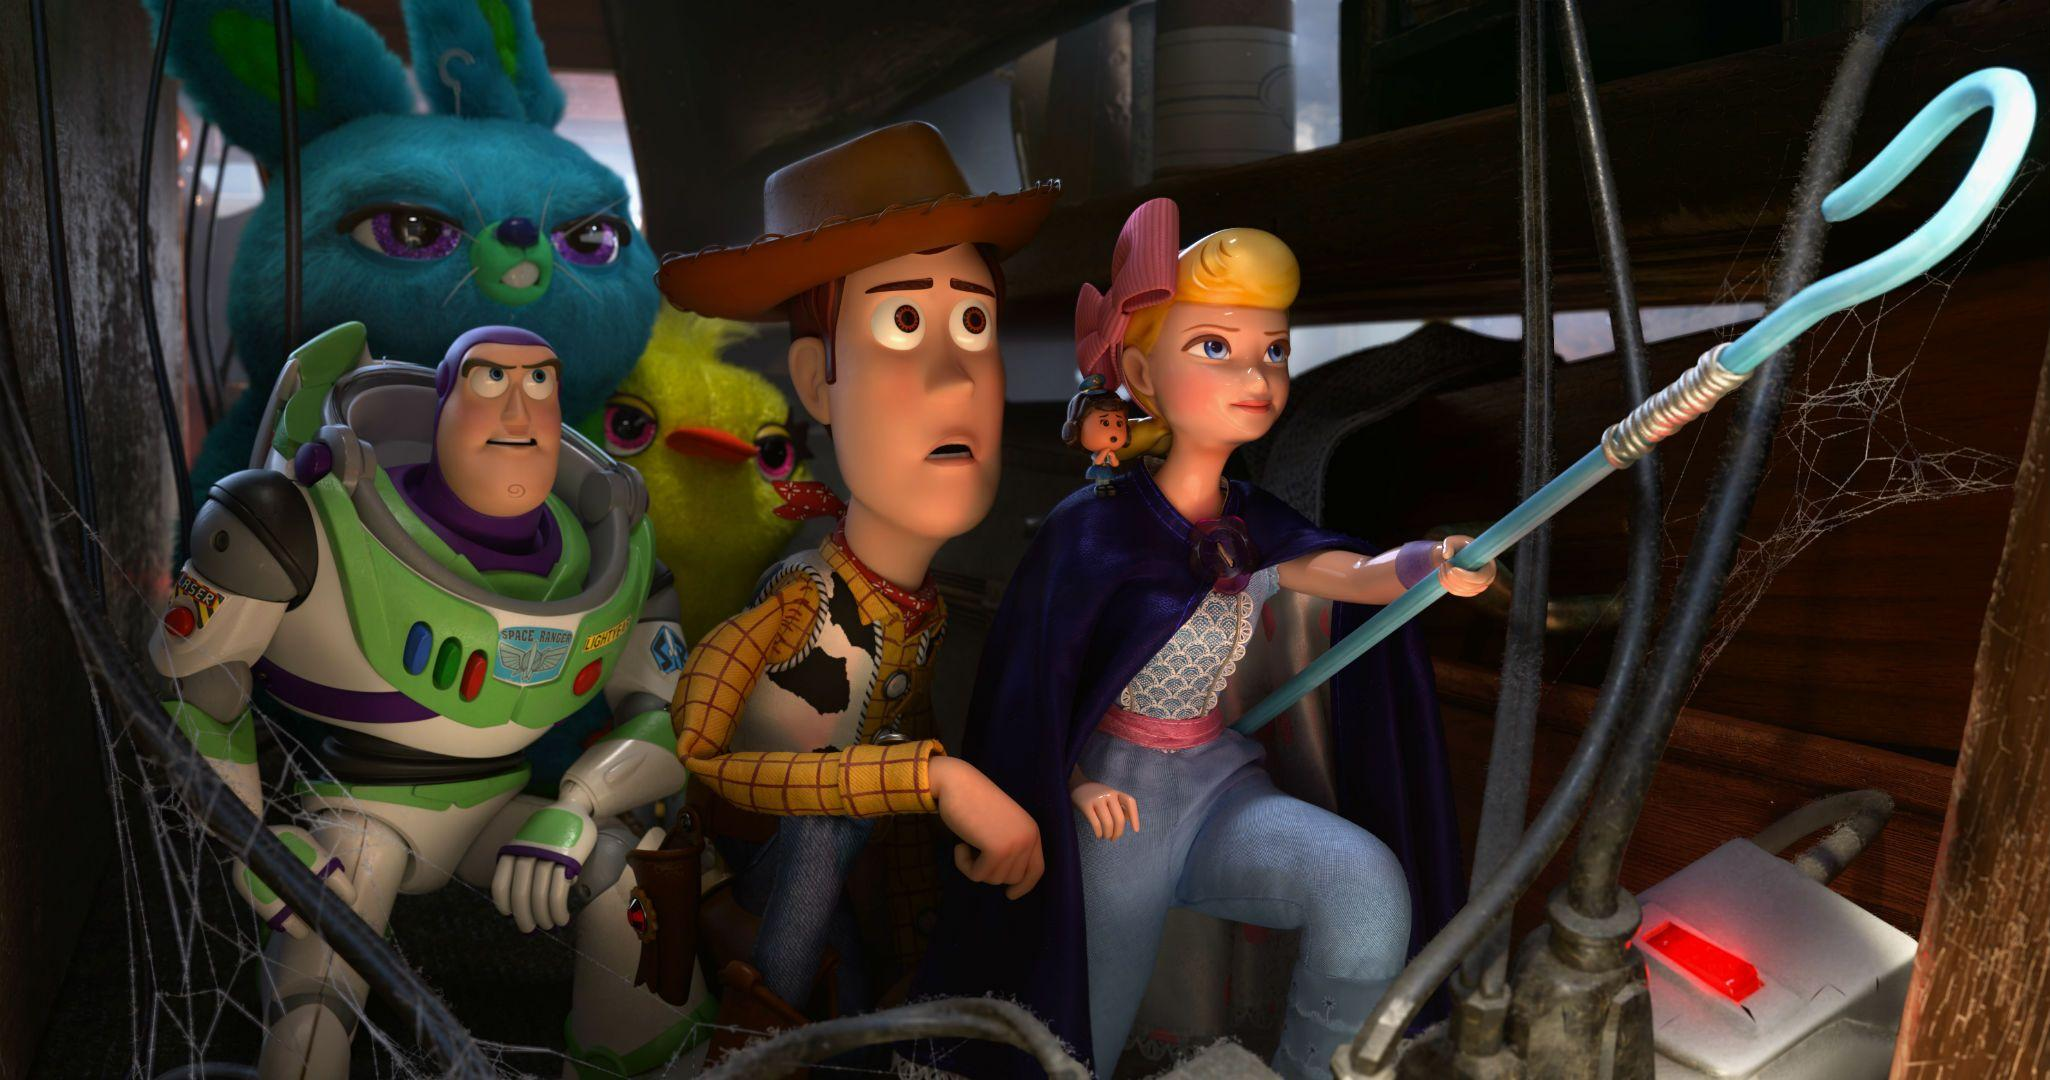 1. TOY STORY 04